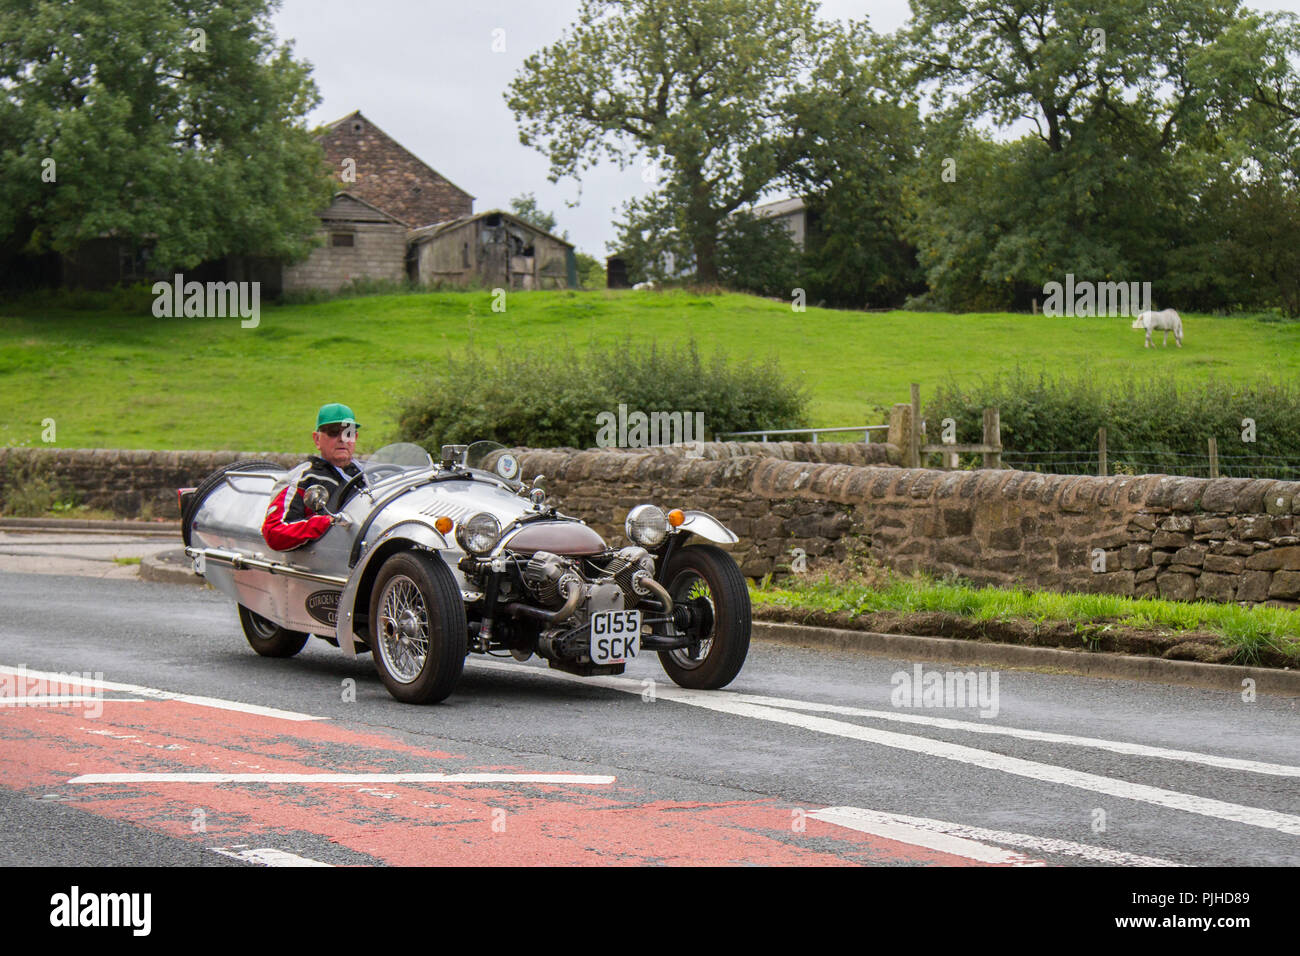 2005 Pembleton G/hopper Classic, vintage, veteran, cars of yesteryear, restored collectibles at Hoghton Tower Car Rally, UK - Stock Image